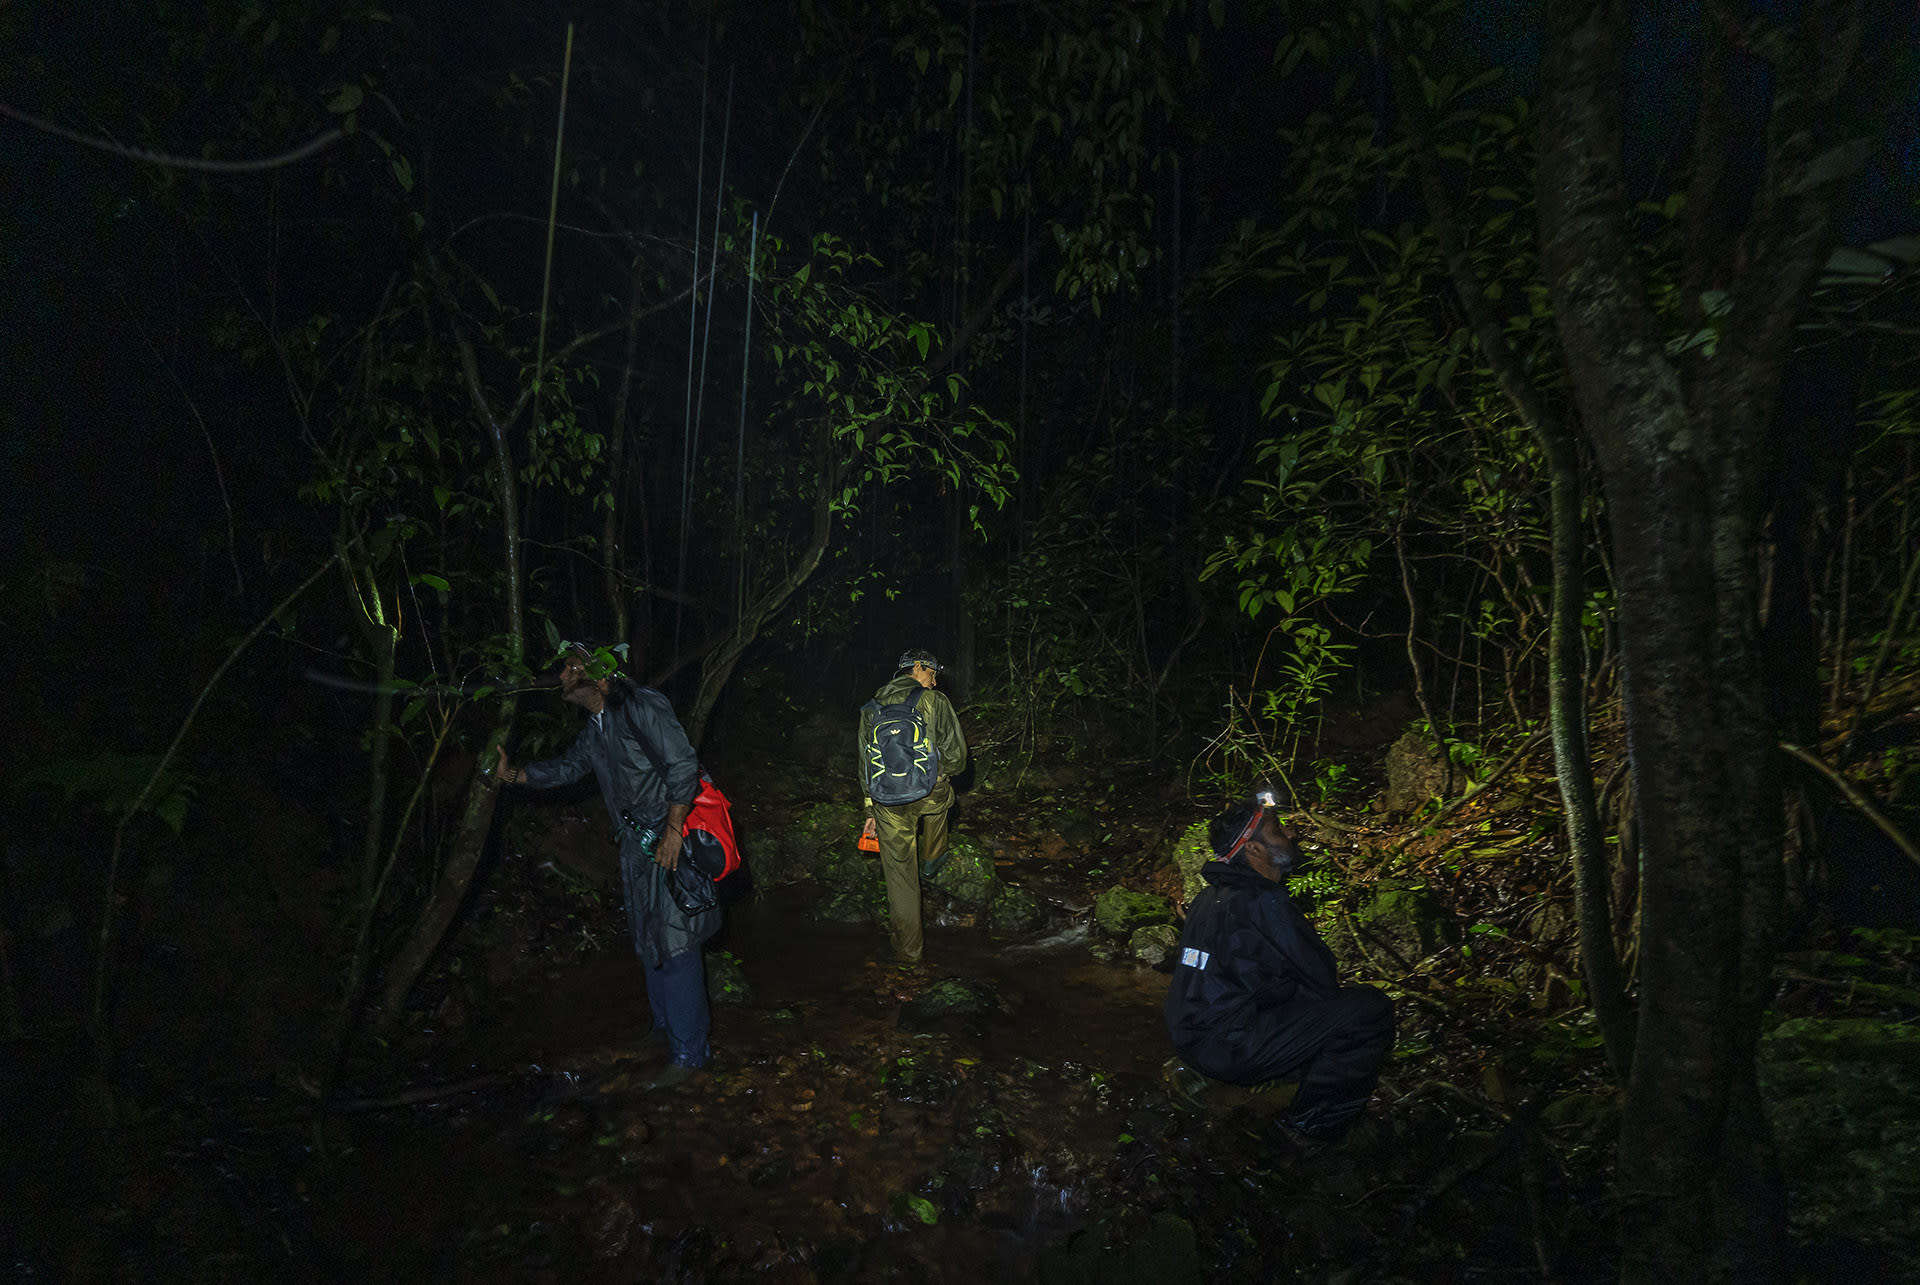 Herpetologists explore the forests of the Western Ghats in the middle of the night with torches and headlamps looking for frogs and geckos.  Photo: Dhritiman Mukherjee